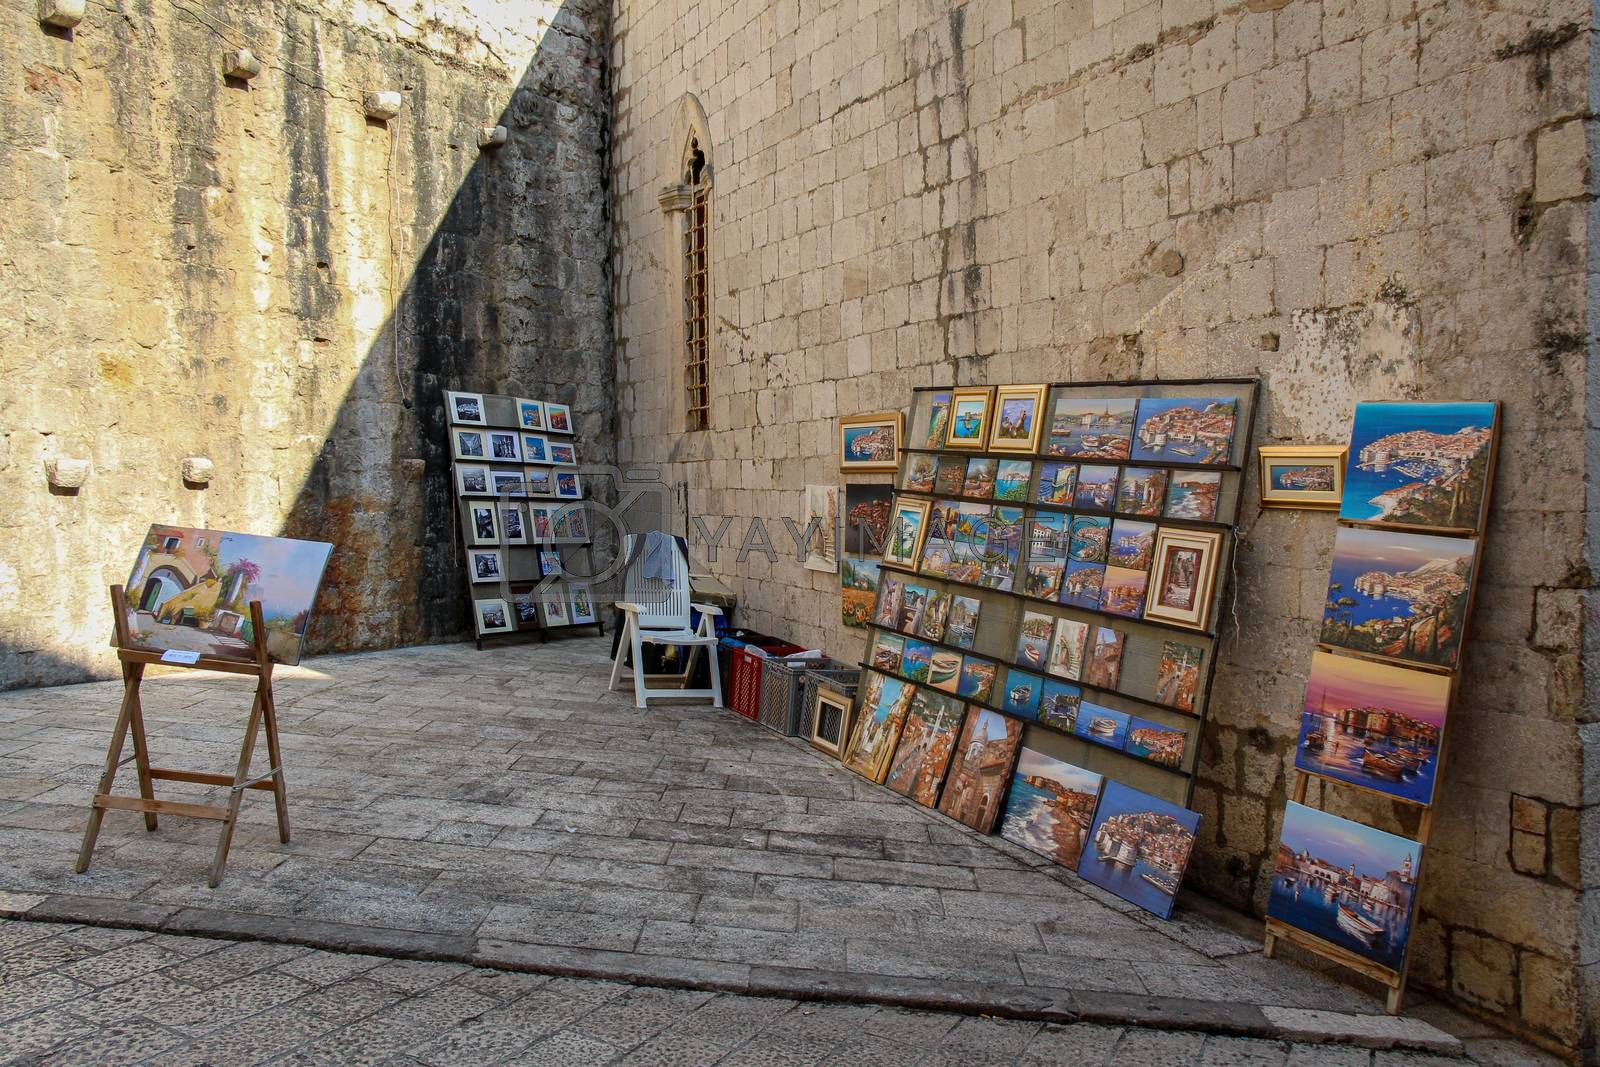 Dubrovnik, Croatia - July 15th 2018: An artists stall in Dubrovnik's old town in a late summers afternoon, Croatia